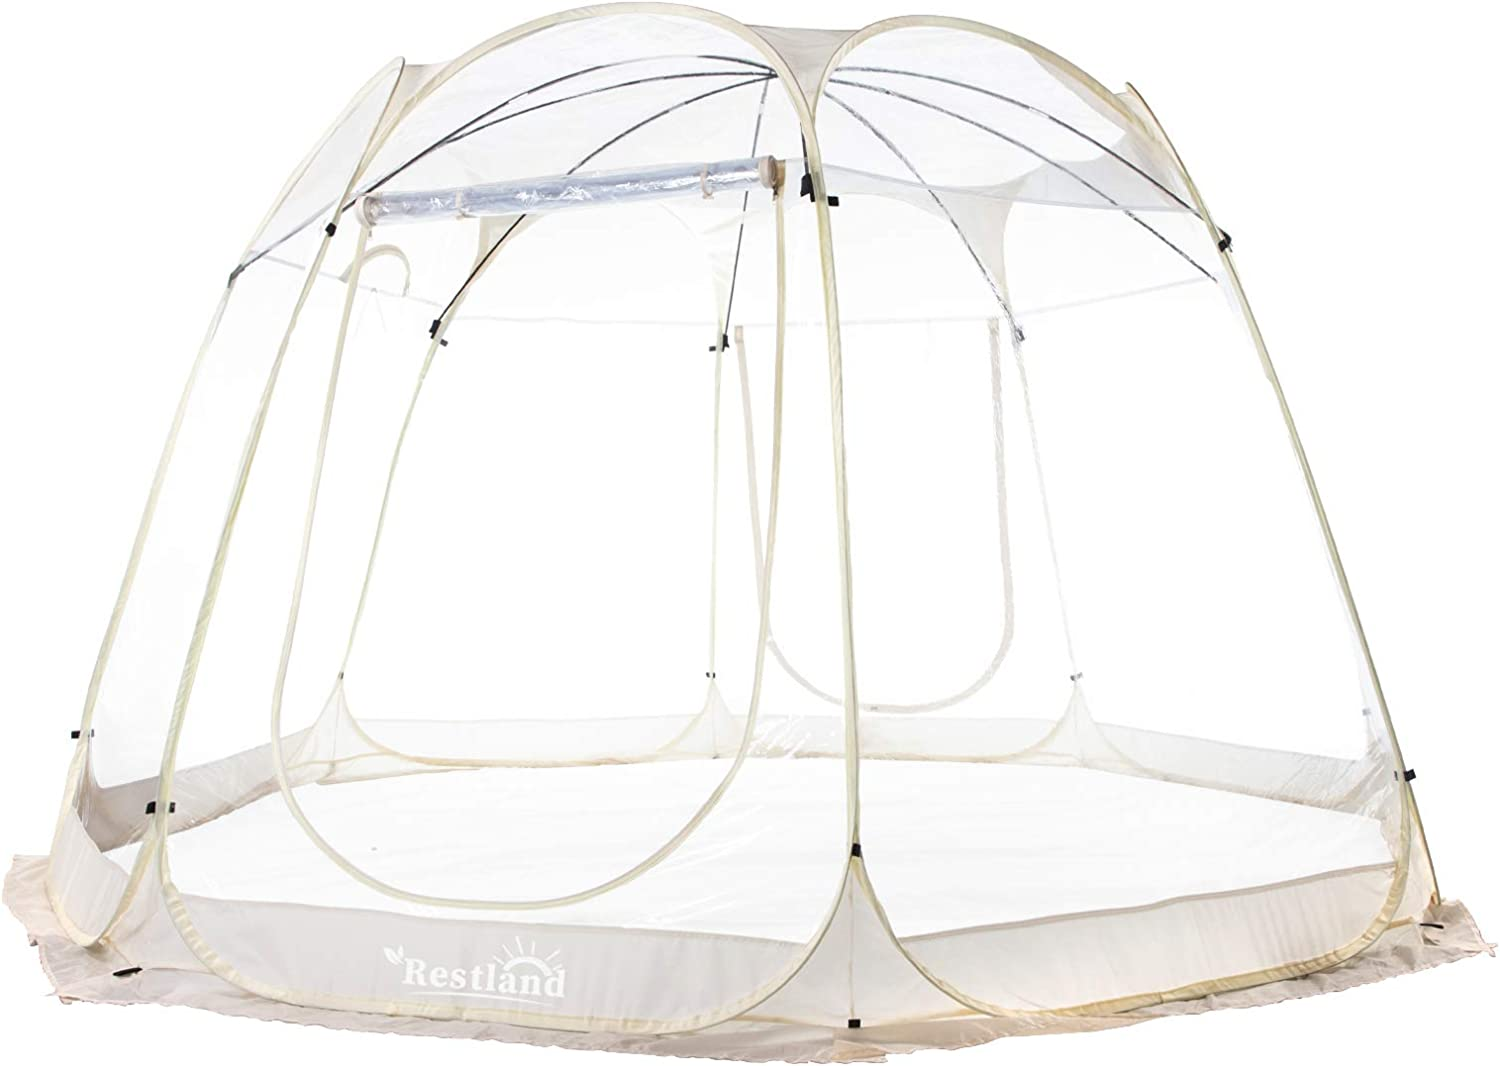 Bubble Tent 12x12, Outdoor Canopy Tent Clear Garden Igloo Tent Gazebos Transparent Bubble Tent Dome Tent Screen House 8-10 Person for Patios, Beige